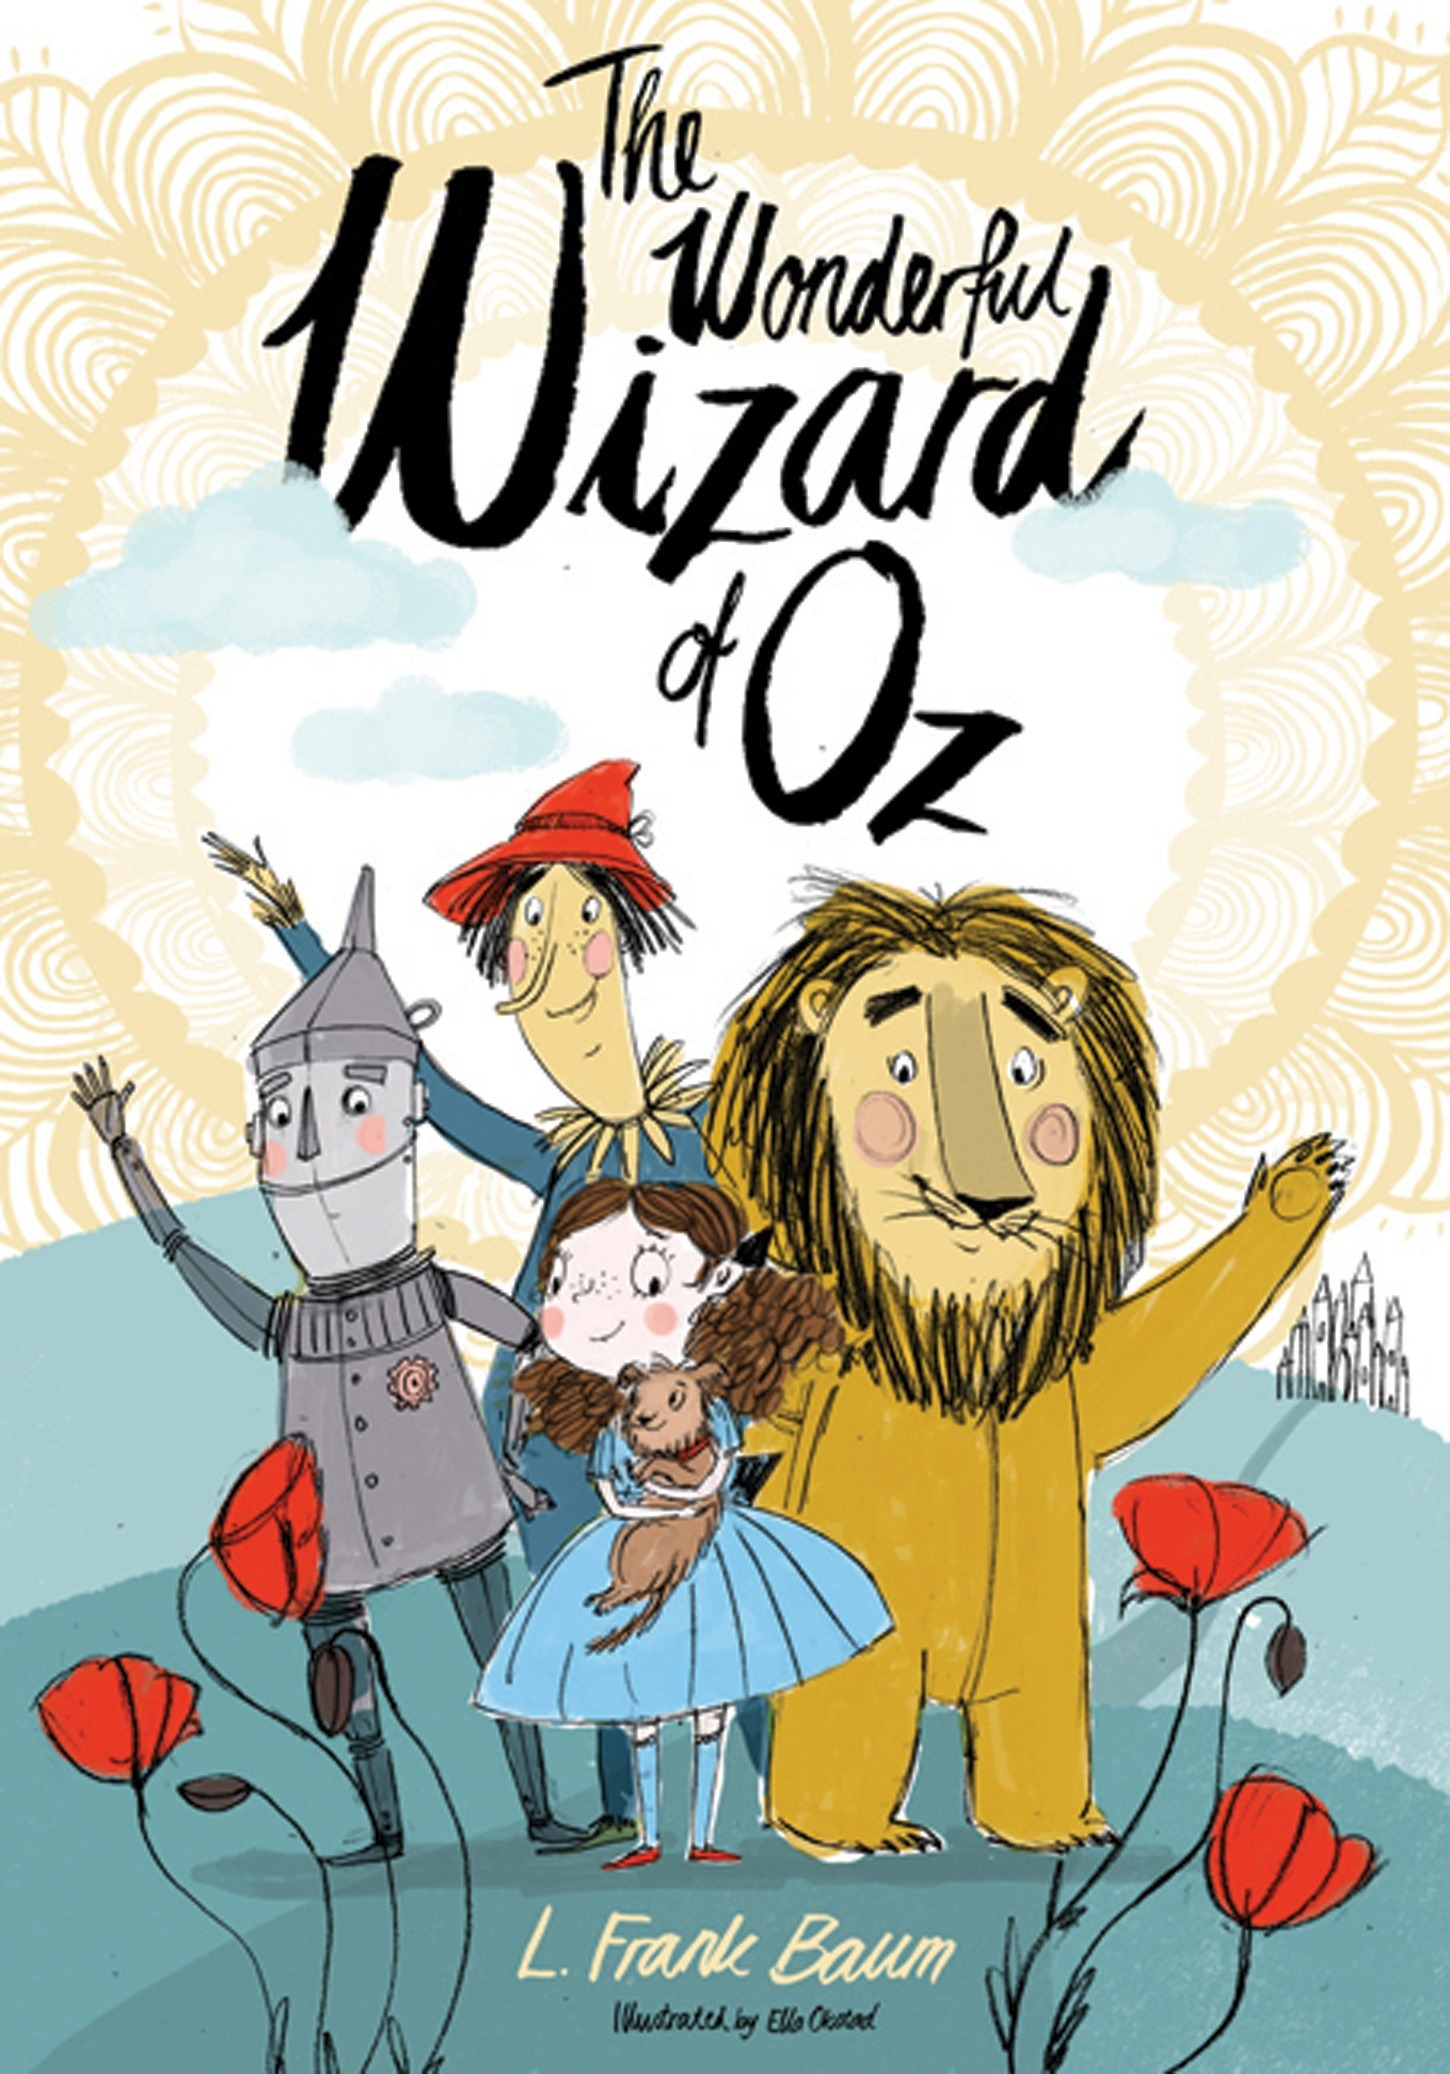 The Wonderful Wizard of Oz, Best Fantasy American Children's Novel in The World